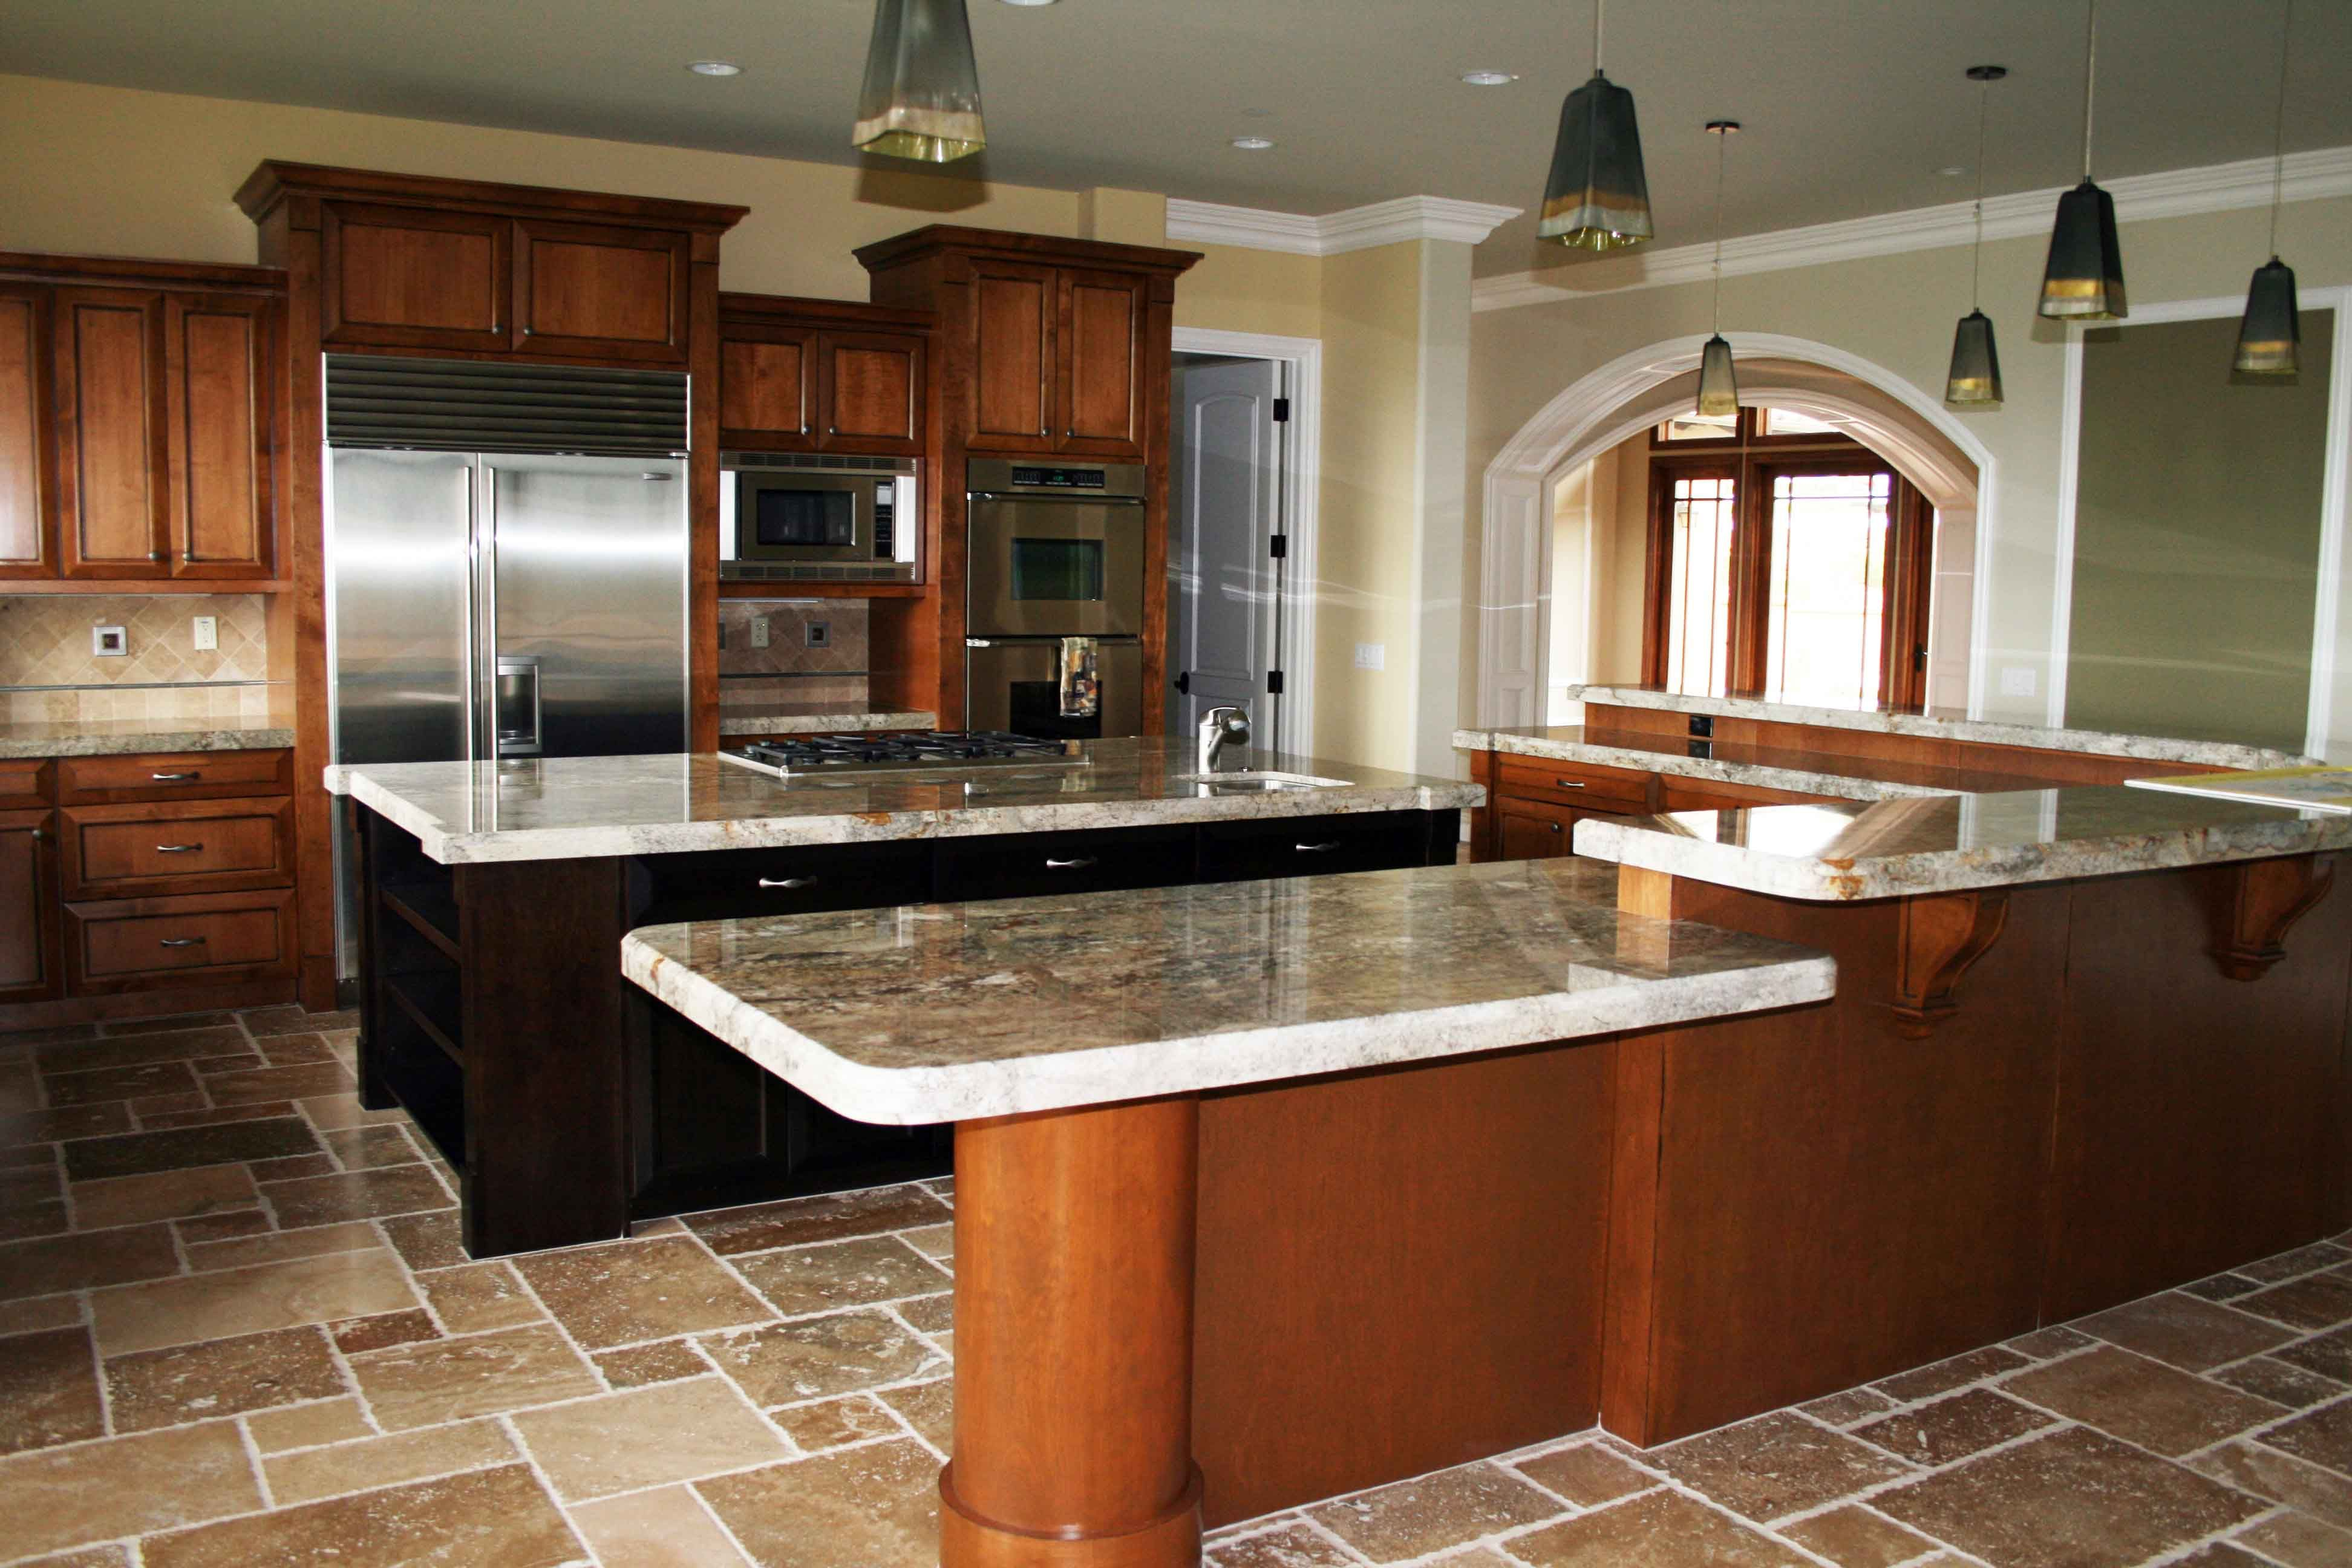 Best Price Kitchen Cabinets صور مطابخ امريكاني مودرن 2017 احدث ديكور مطبخ سوبر كايرو